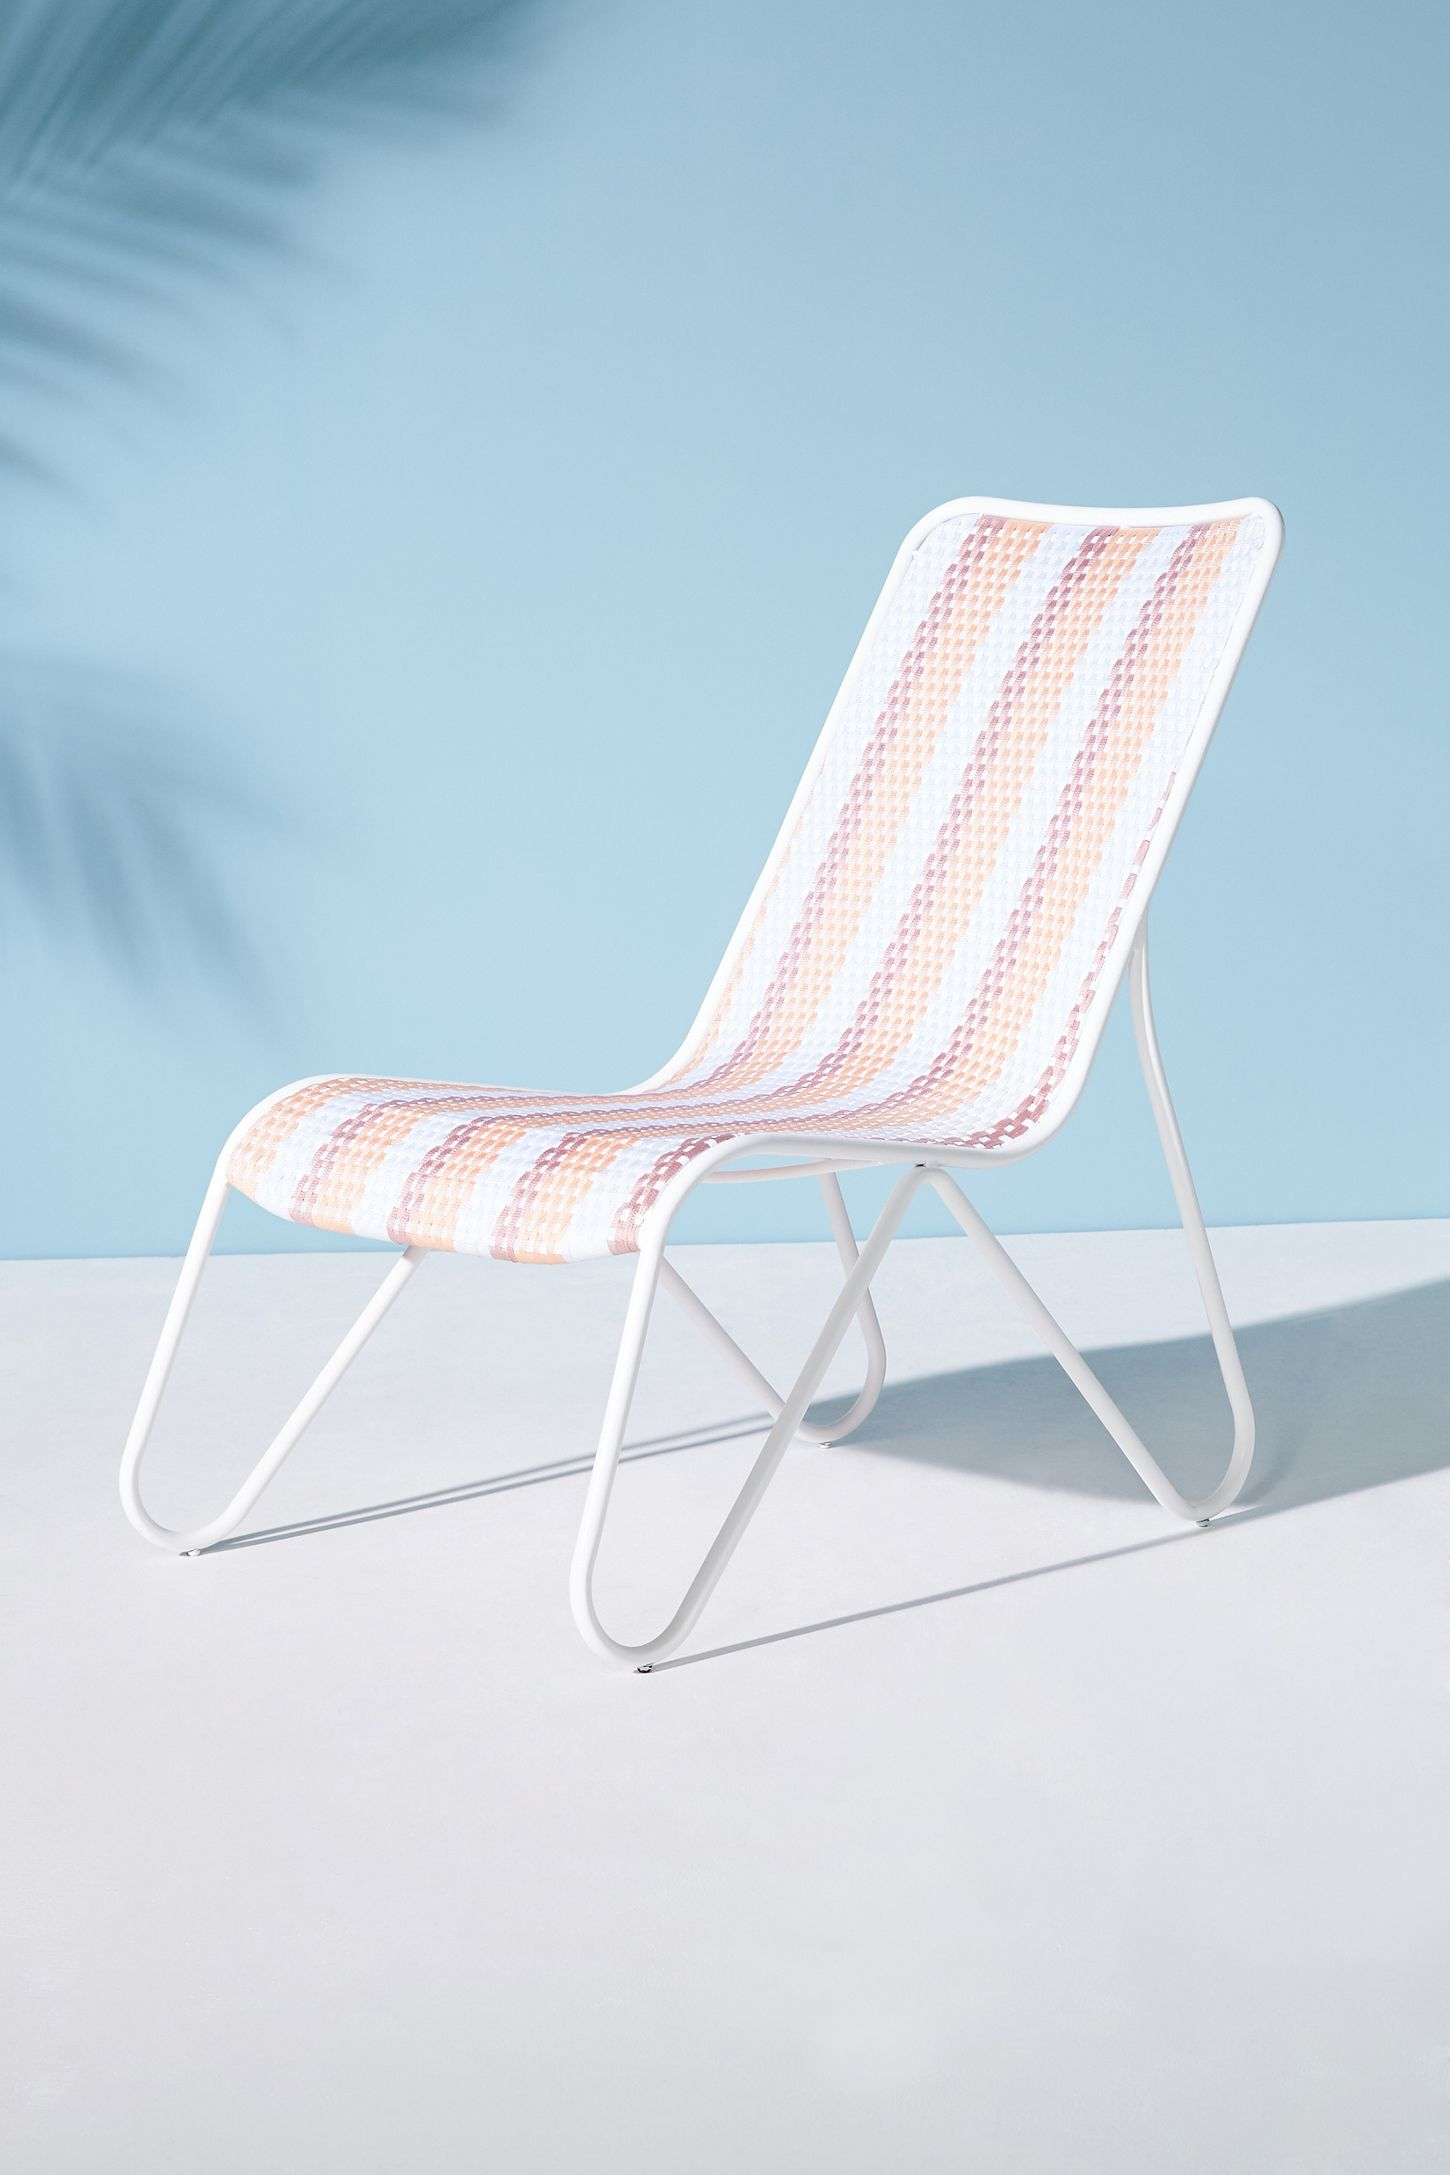 Remarkable Palm Beach Indoor Outdoor Chair Ibusinesslaw Wood Chair Design Ideas Ibusinesslaworg